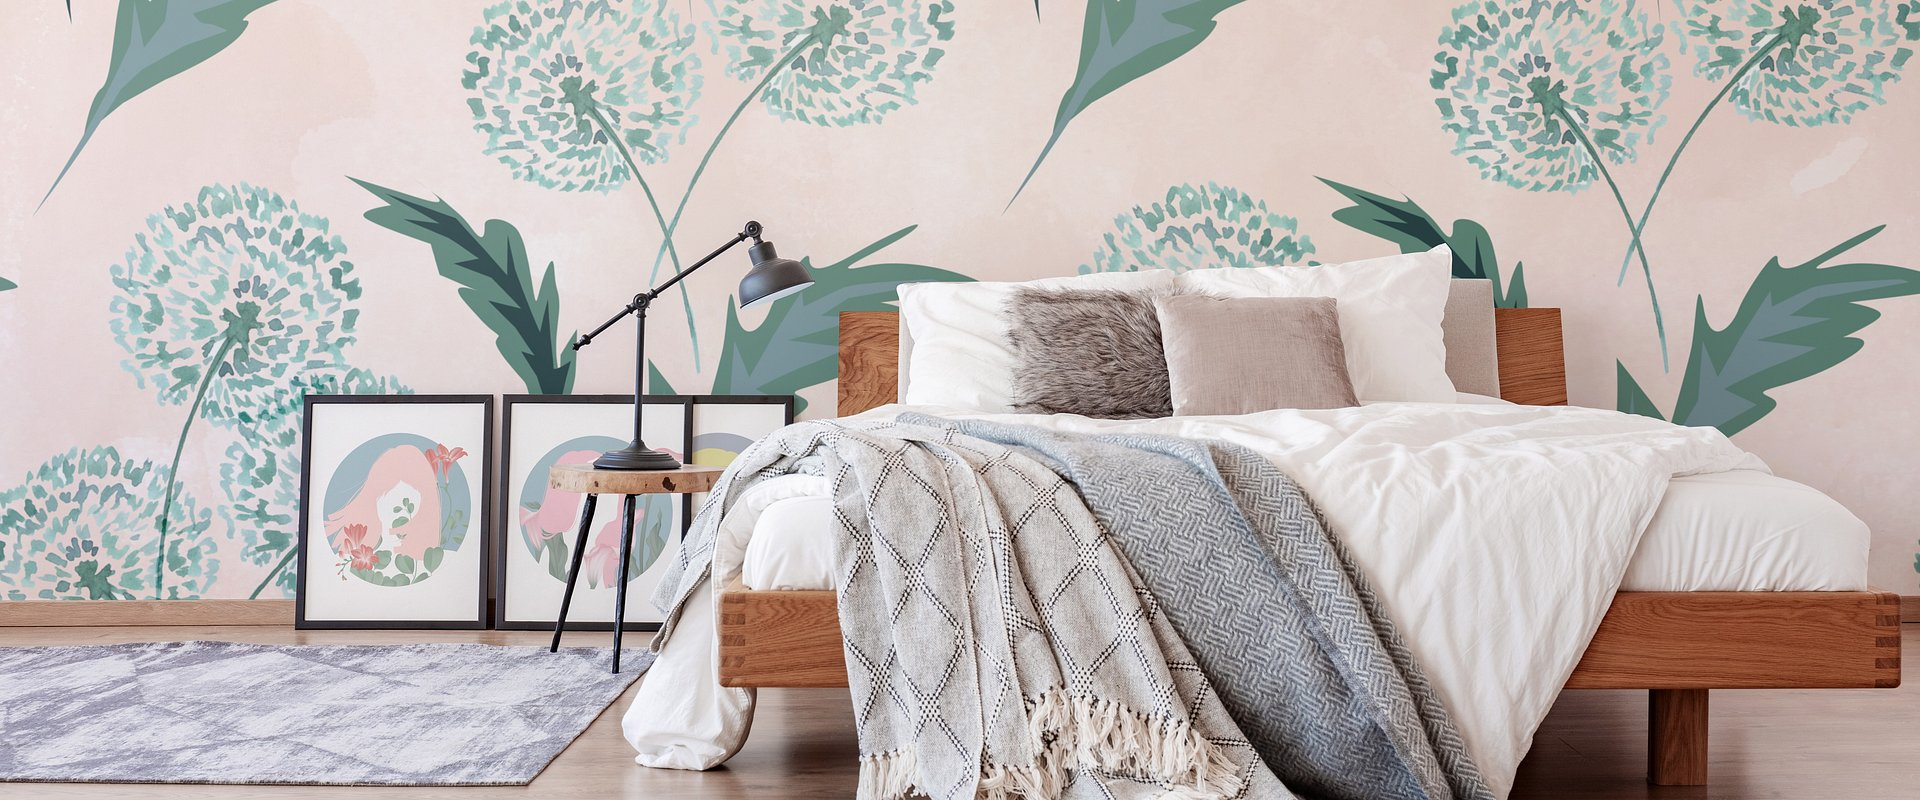 Spring in the interiors - it's all about the color!